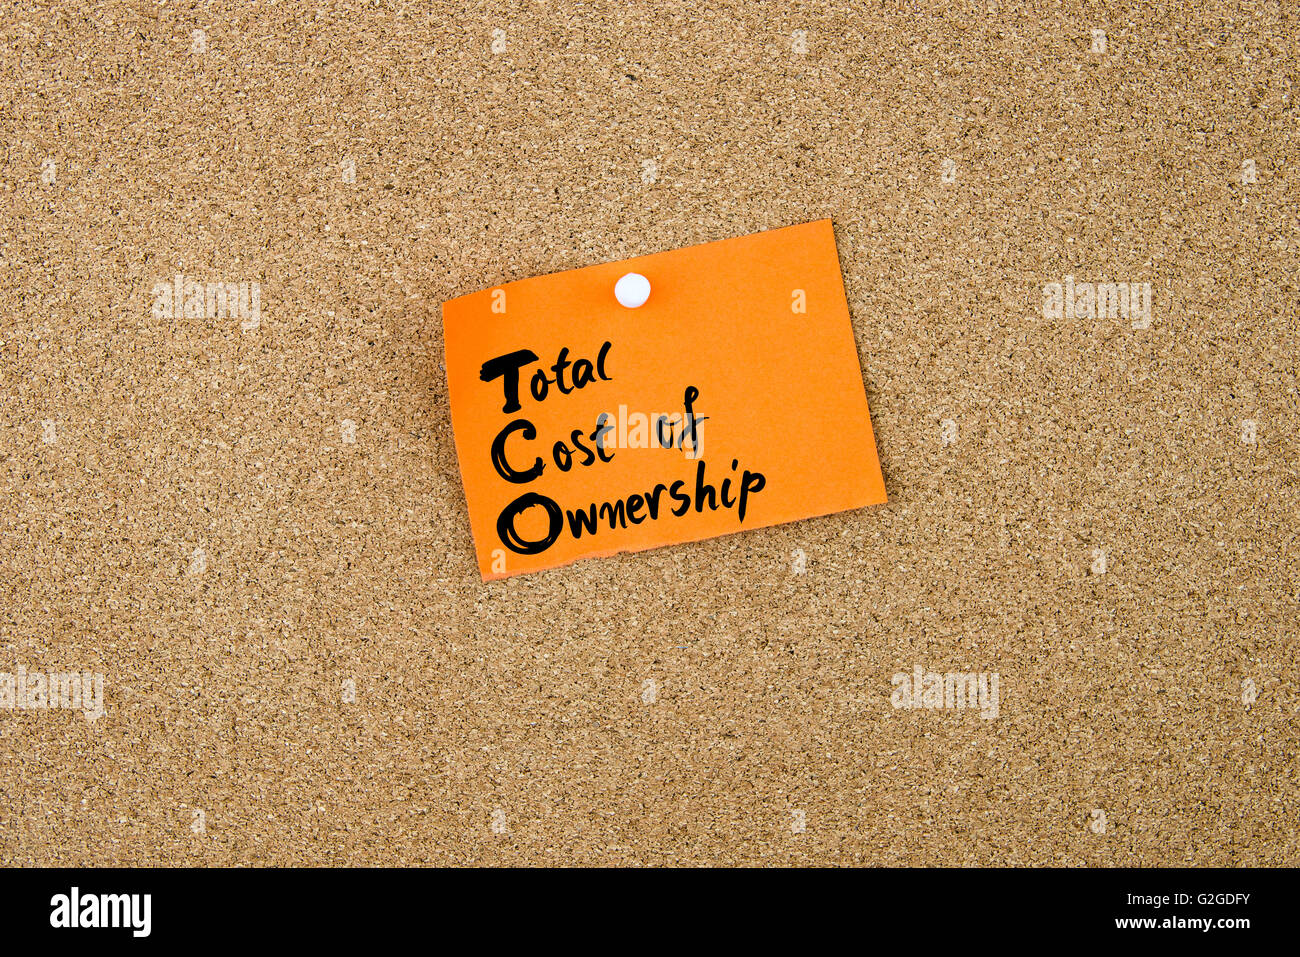 Business Acronym TCO as Total Cost Of Ownership written on orange paper note pinned on cork board with white thumbtacks, - Stock Image